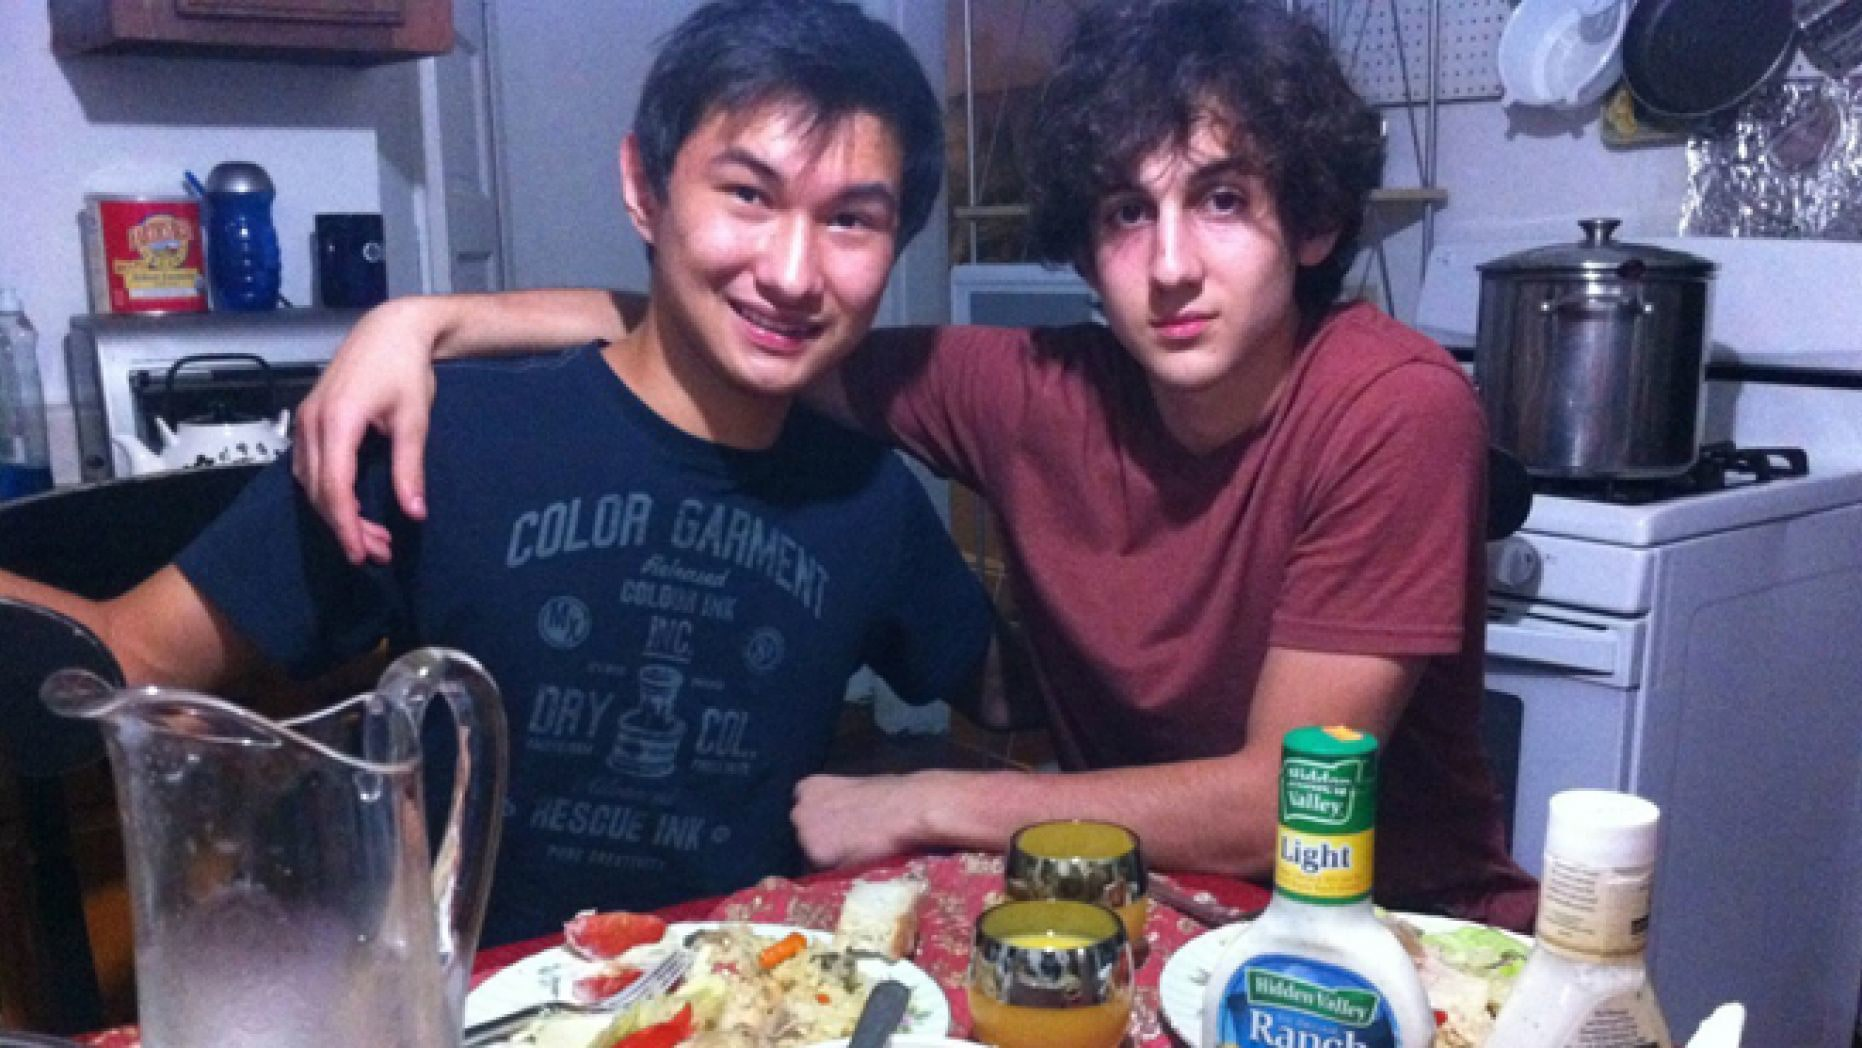 Dias Kadyrbayev, left, with Boston Marathon bomber Dzhokhar Tsarnaev, at an unknown location. Kadyrbayev, a college buddy of Tsarnaev from Kazakhstan, was jailed by immigration authorities the day after Tsarnaev's capture.Kadyrbayev, 24, was removed from America on Oct. 23, ICE said.